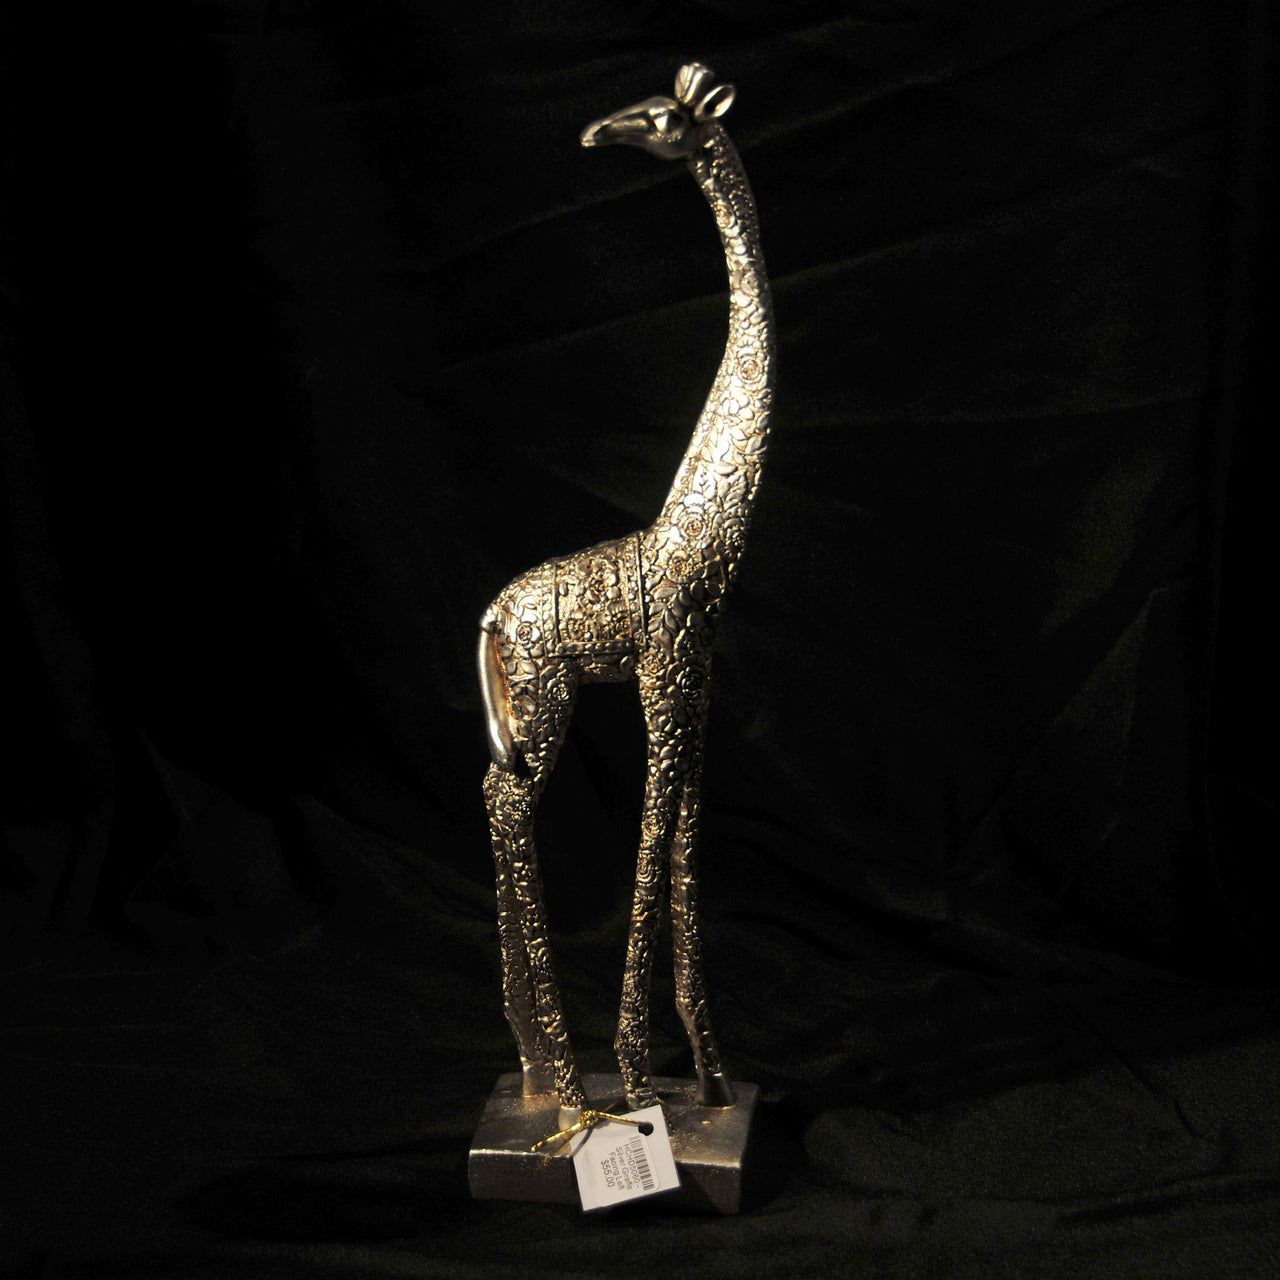 HCHD5060 - Silver Giraffe Facing Left